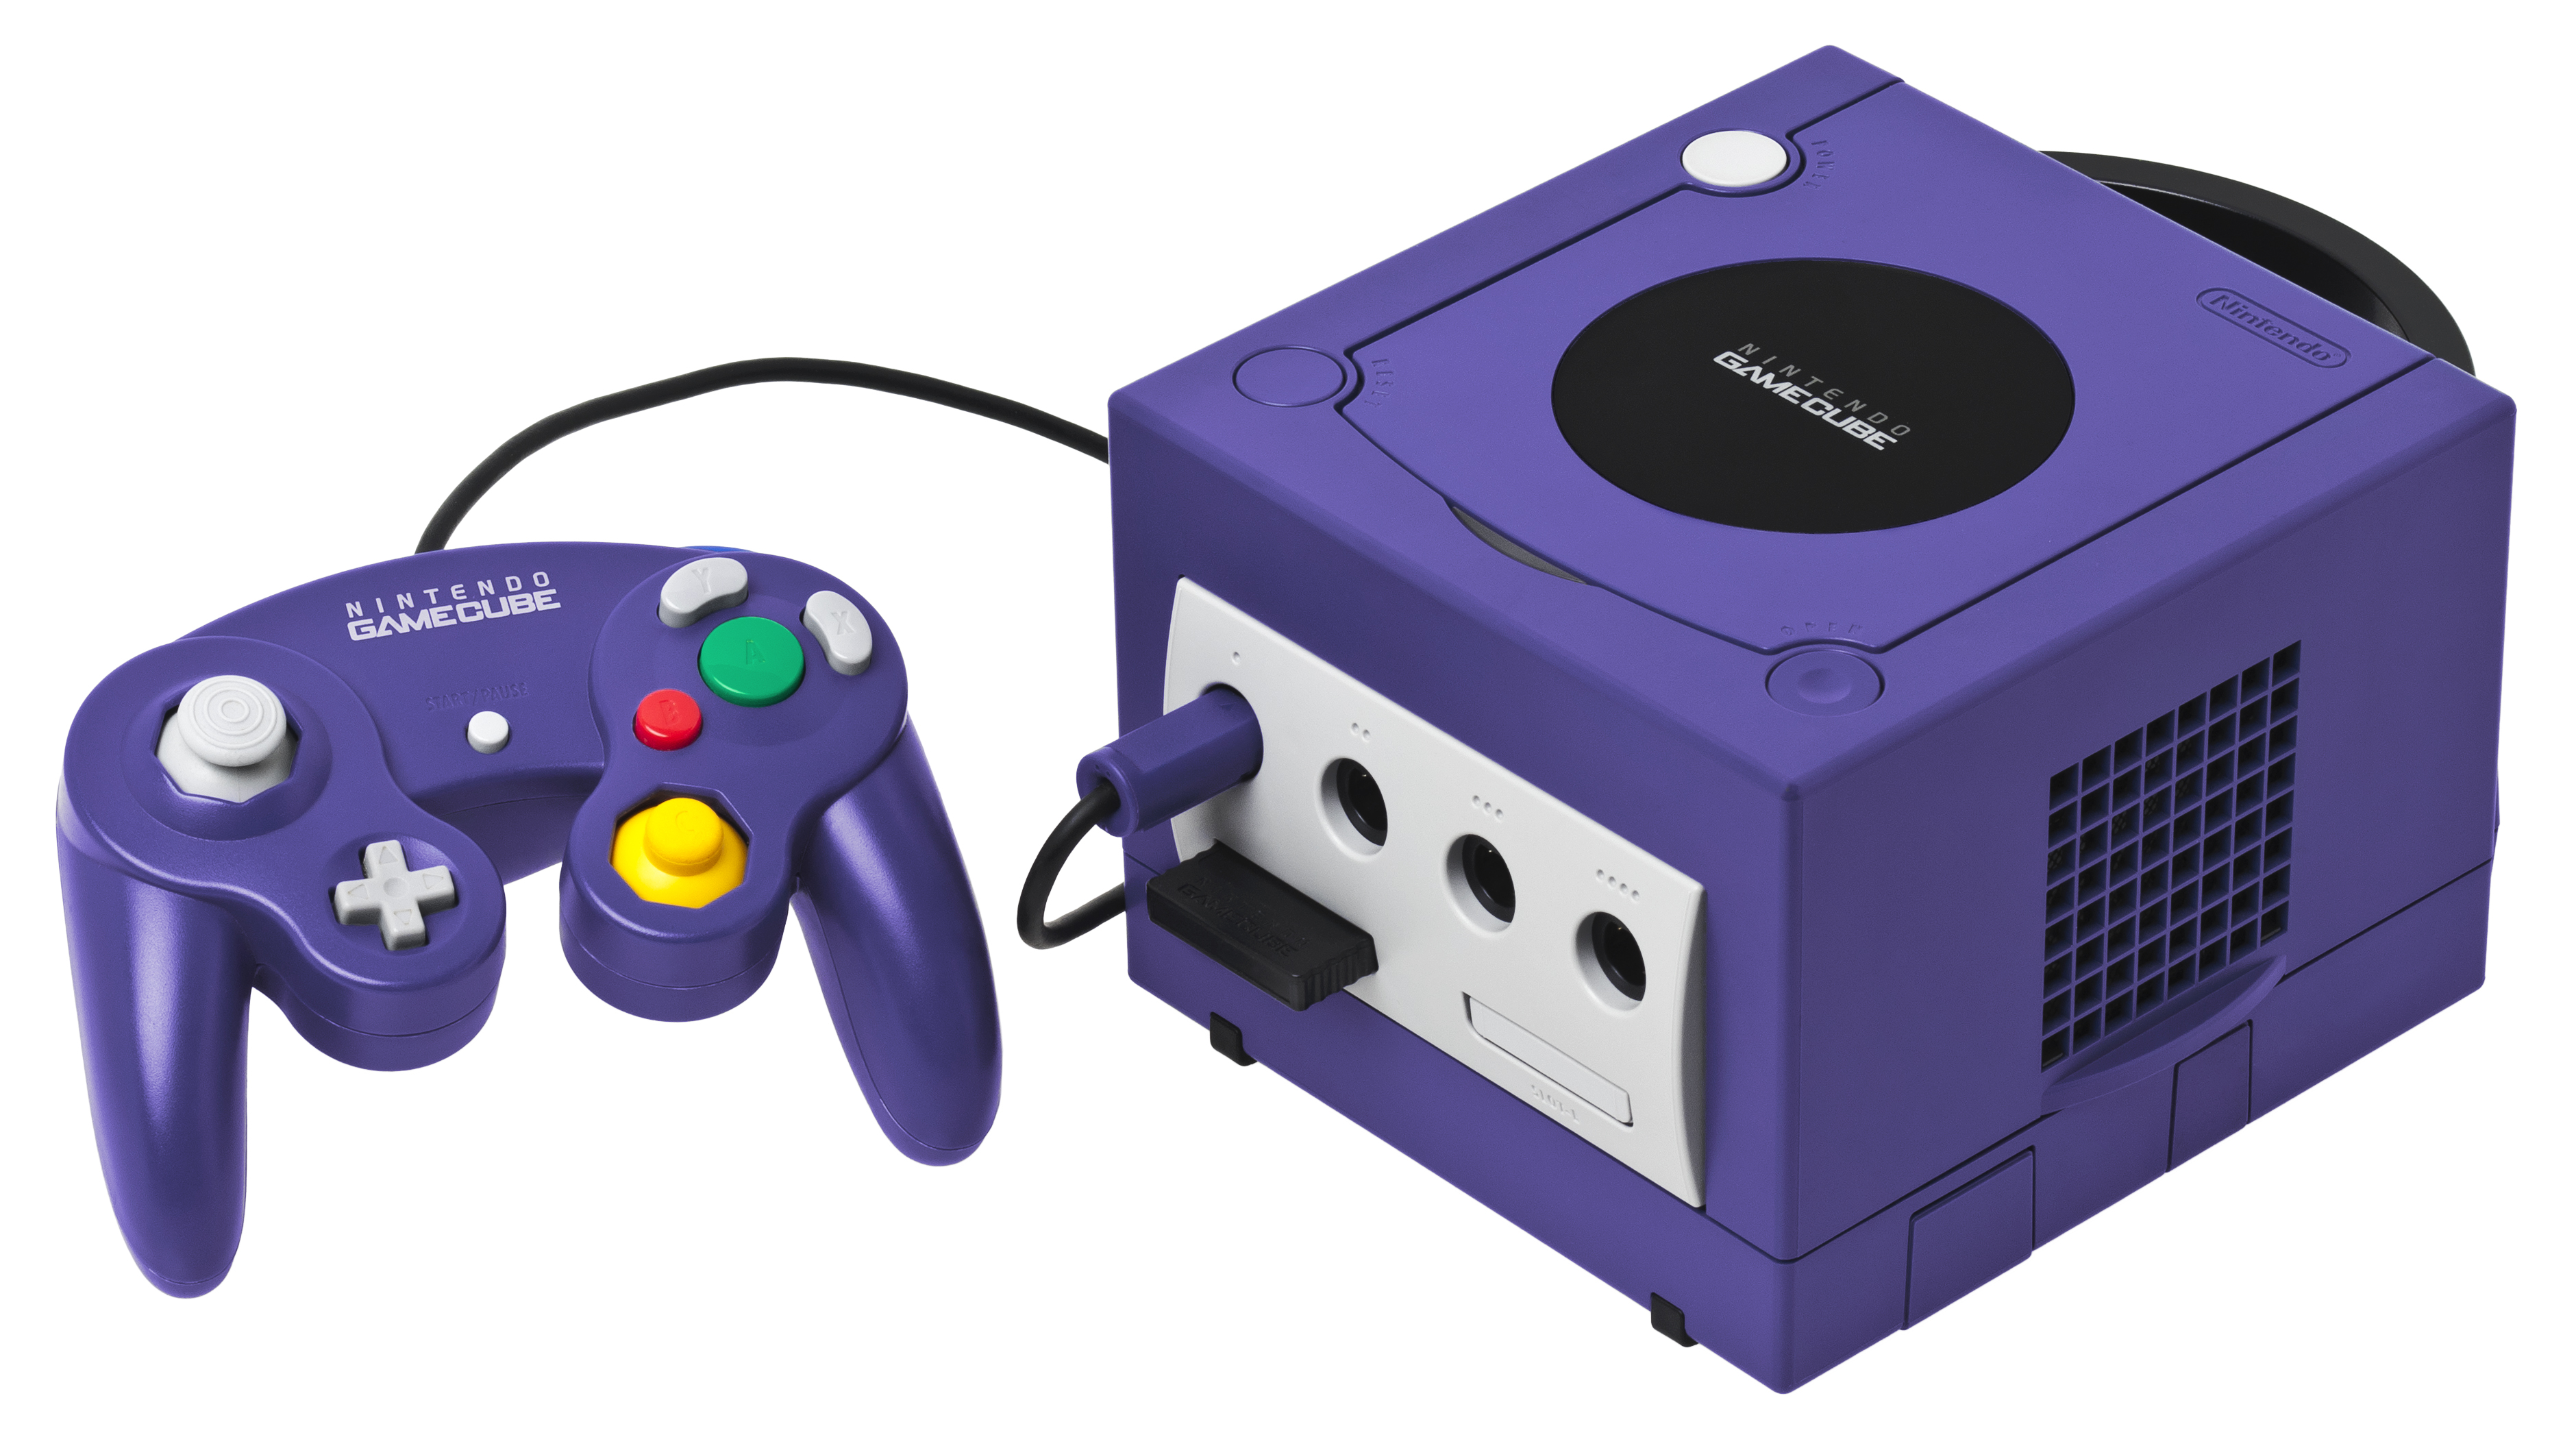 In just under two years the Nintendo Switch has outsold the GameCube screenshot